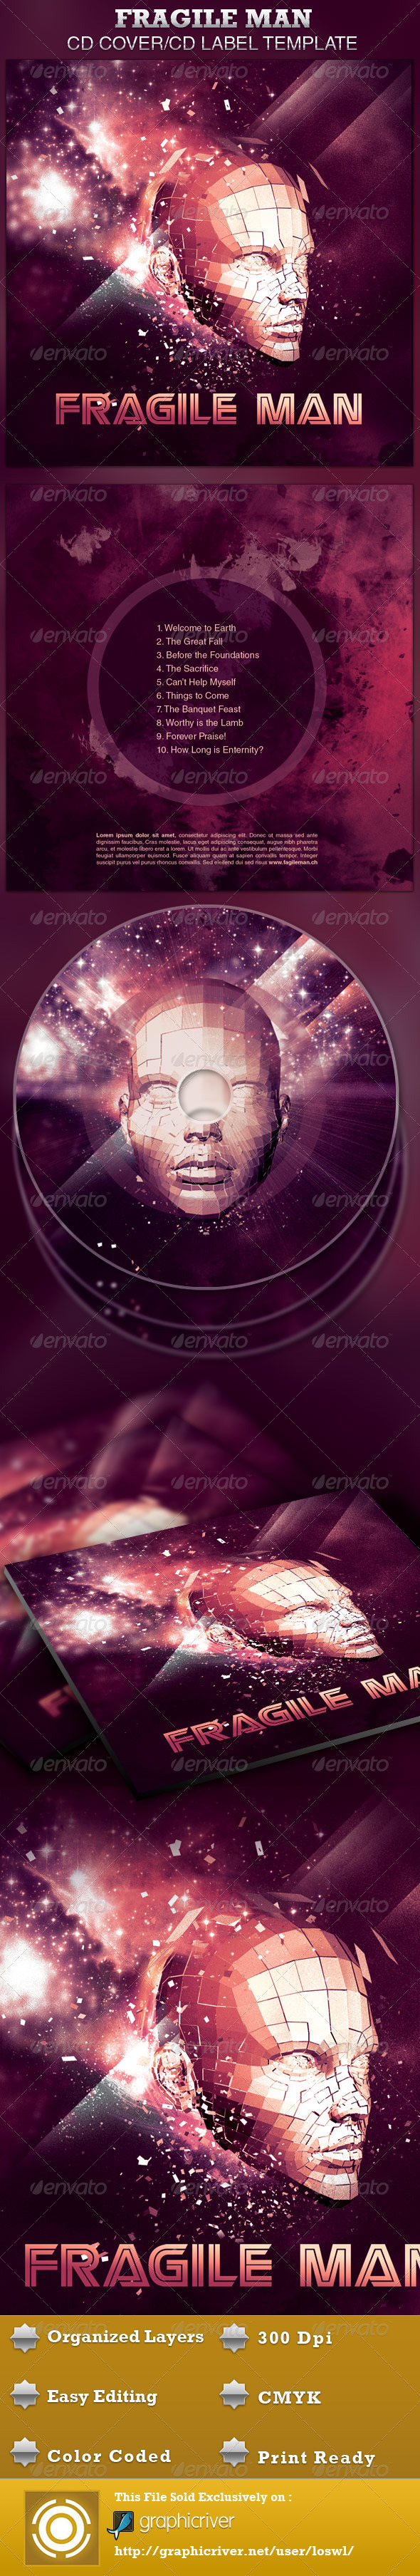 GraphicRiver Fragile Man CD Artwork Template 4253570